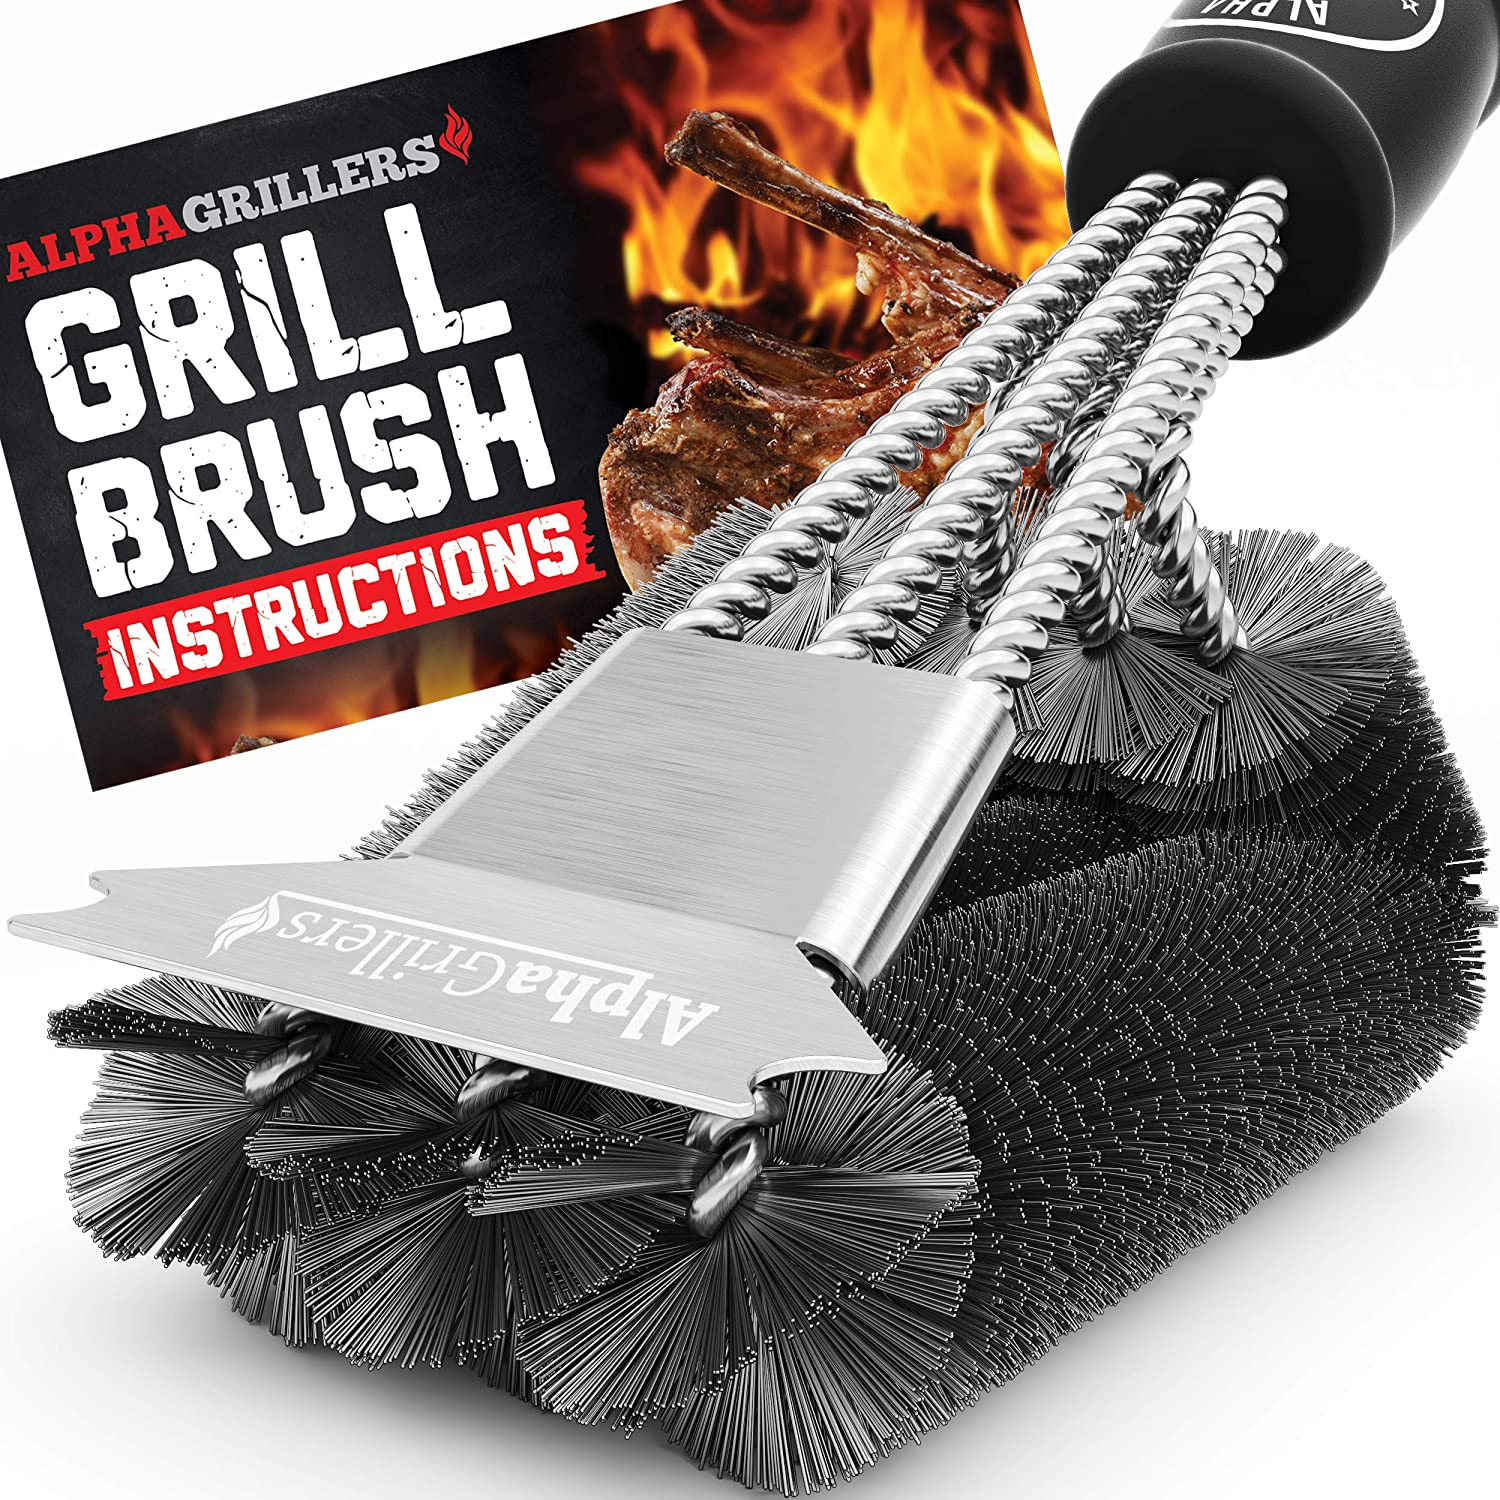 Alpha Grillers Grill Brush Review